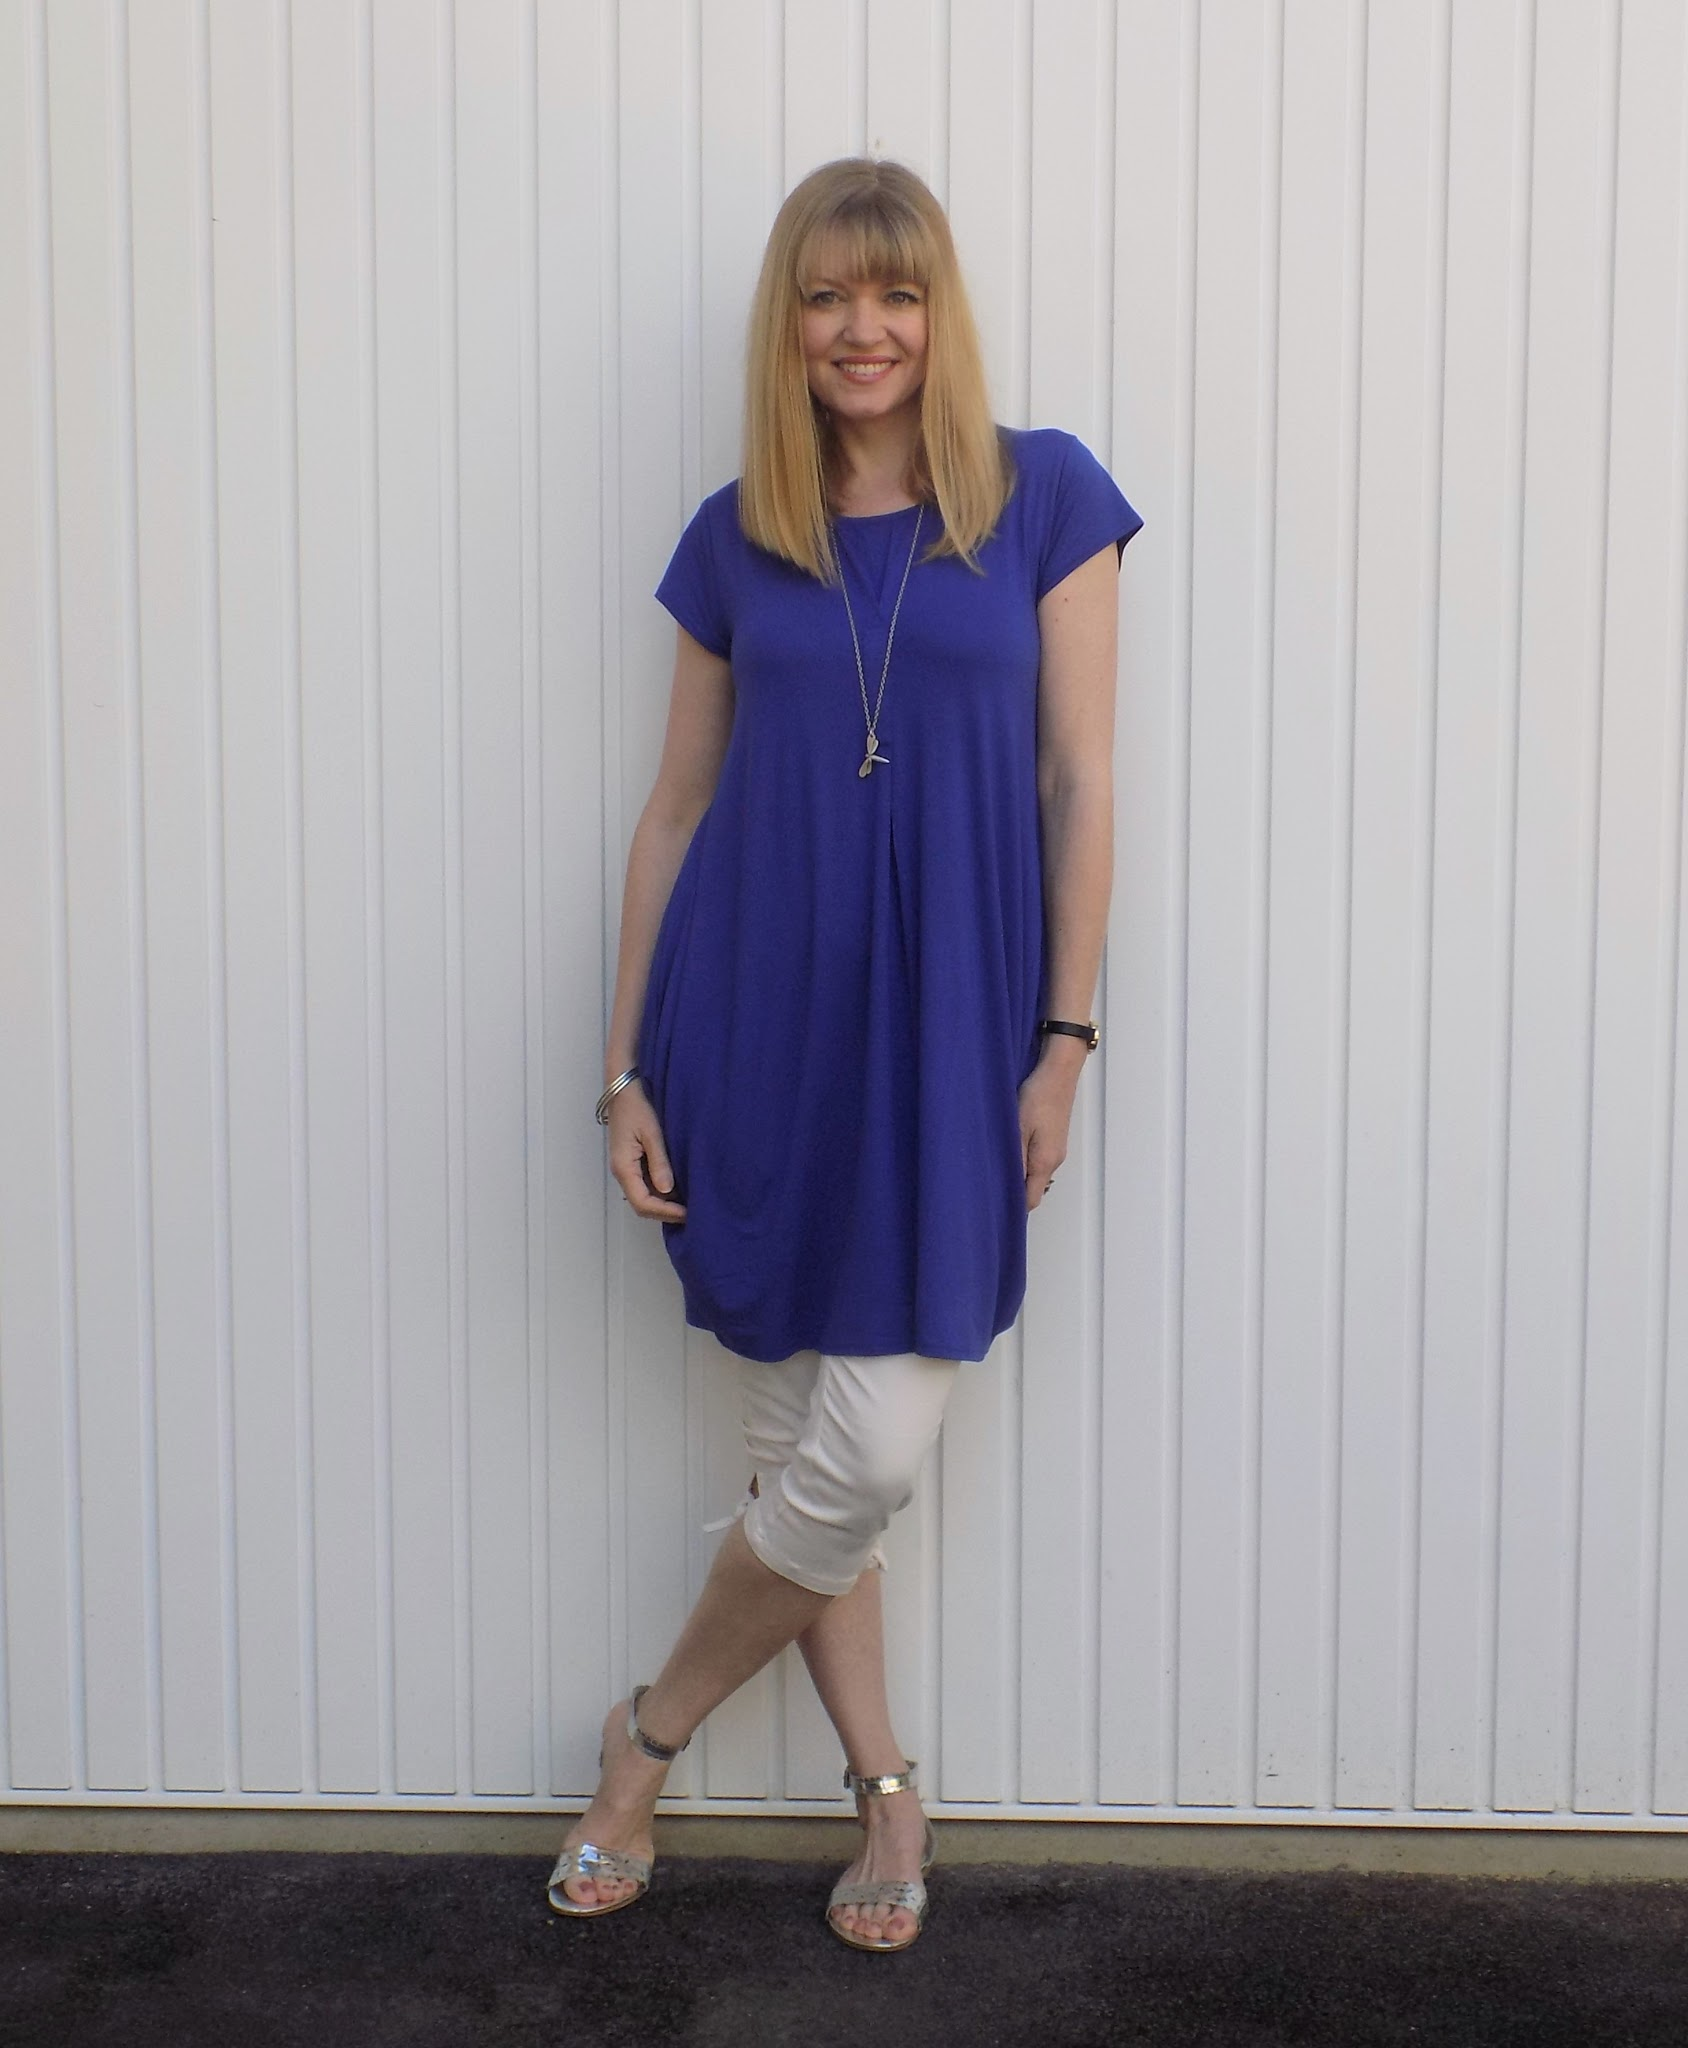 Cobalt blue Masai cocoon dress from Gemini woman